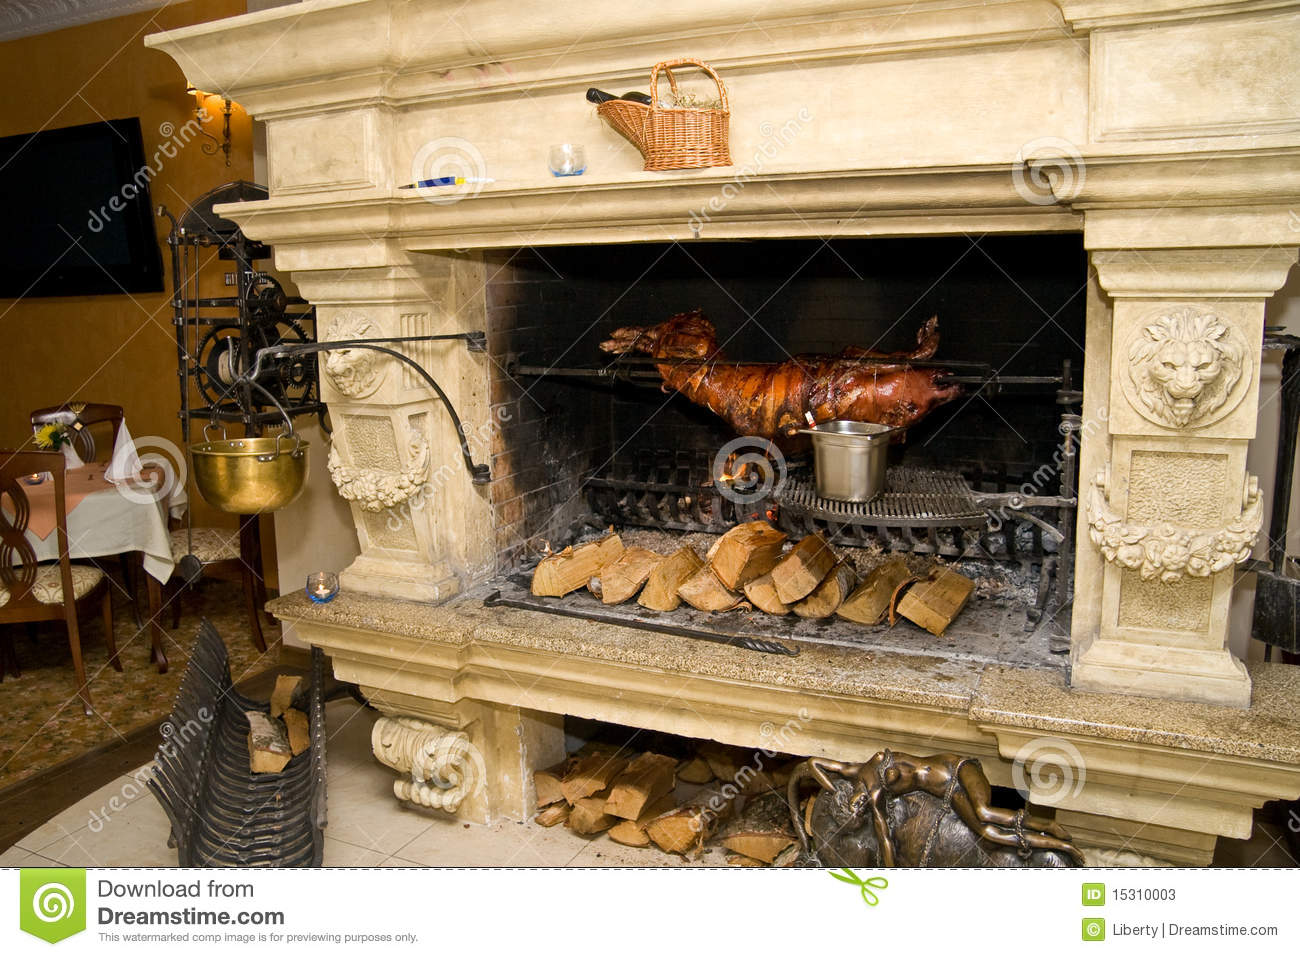 Luxury Fireplace Mantels Fireplace Cooking Stock Image. Image Of Cooking, Open